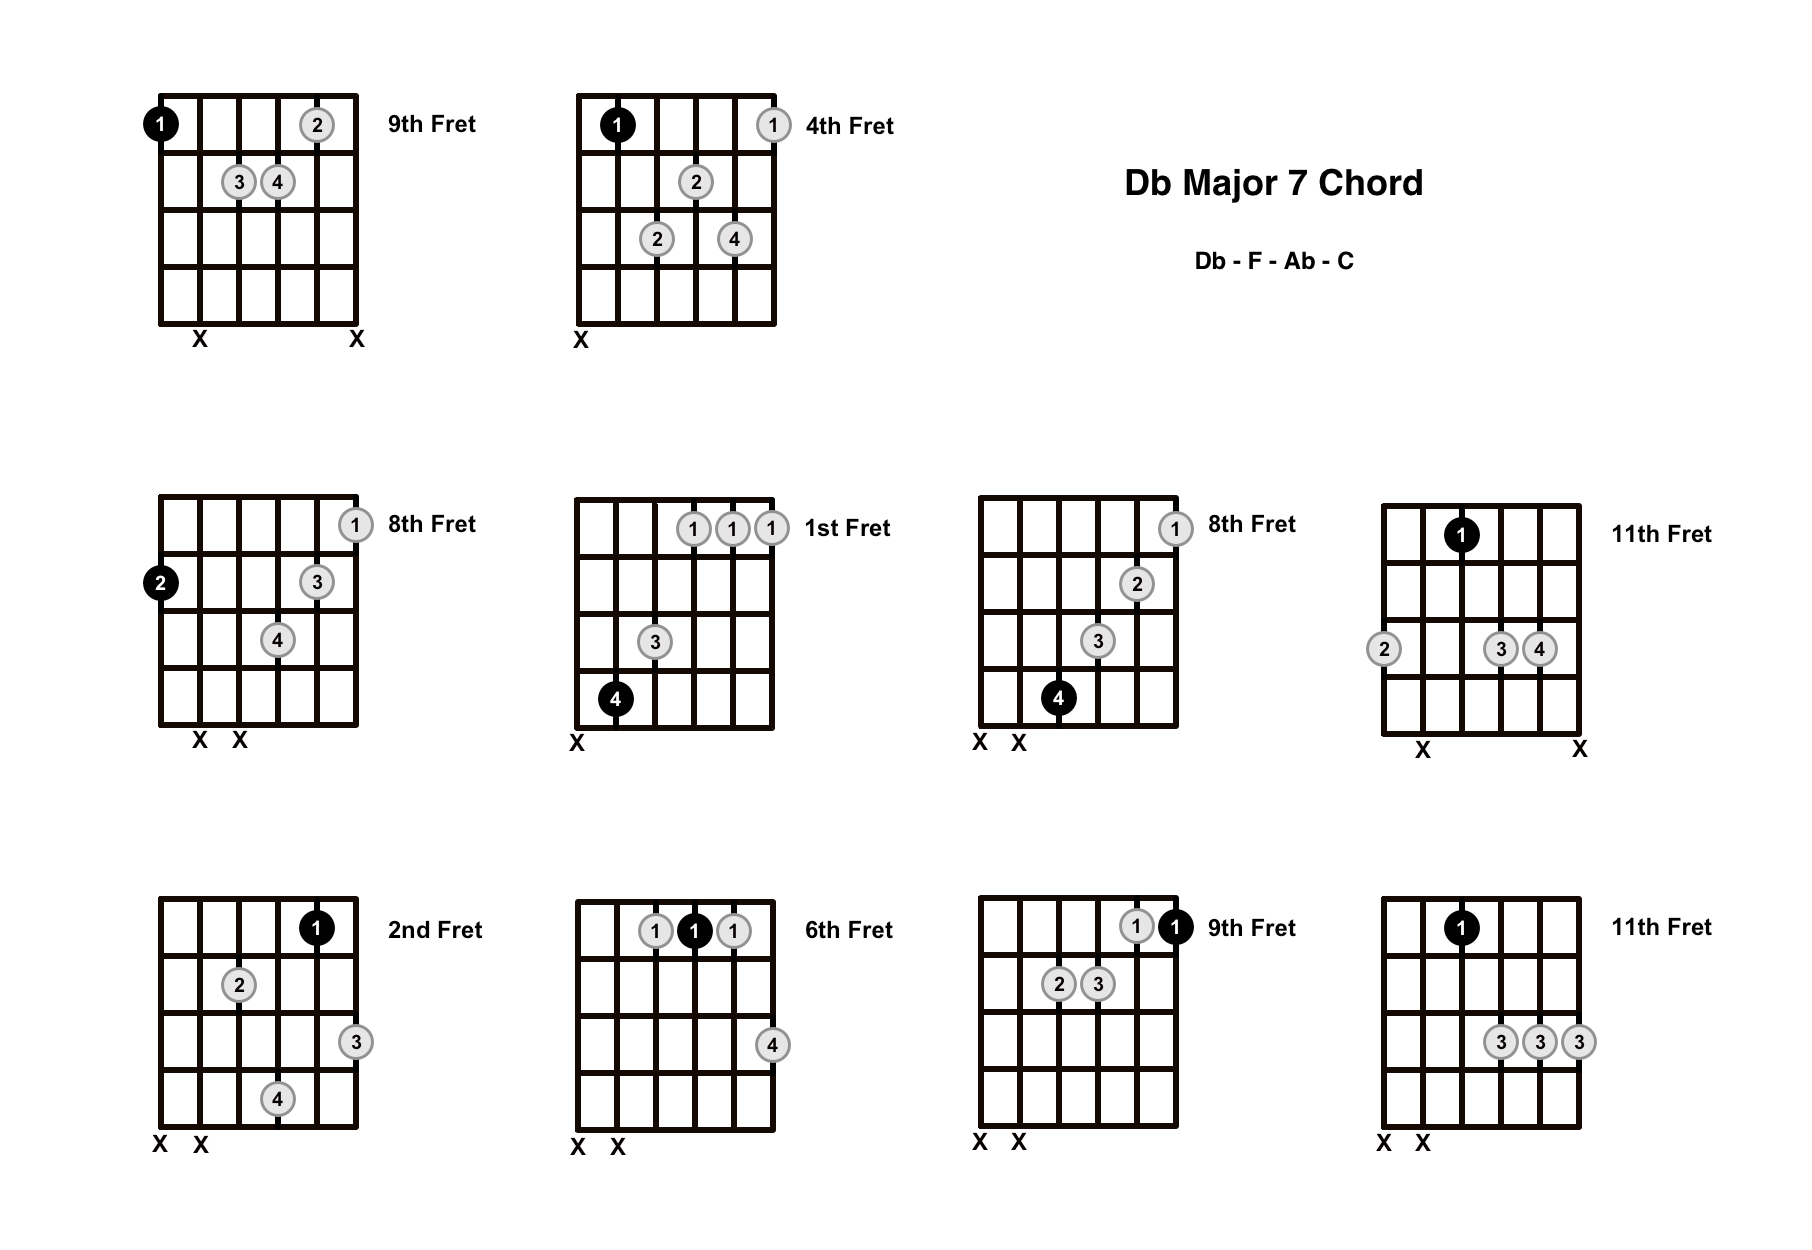 D Flat Major 7 Chord On The Guitar (Db Maj 7) – Diagrams, Finger Positions and Theory